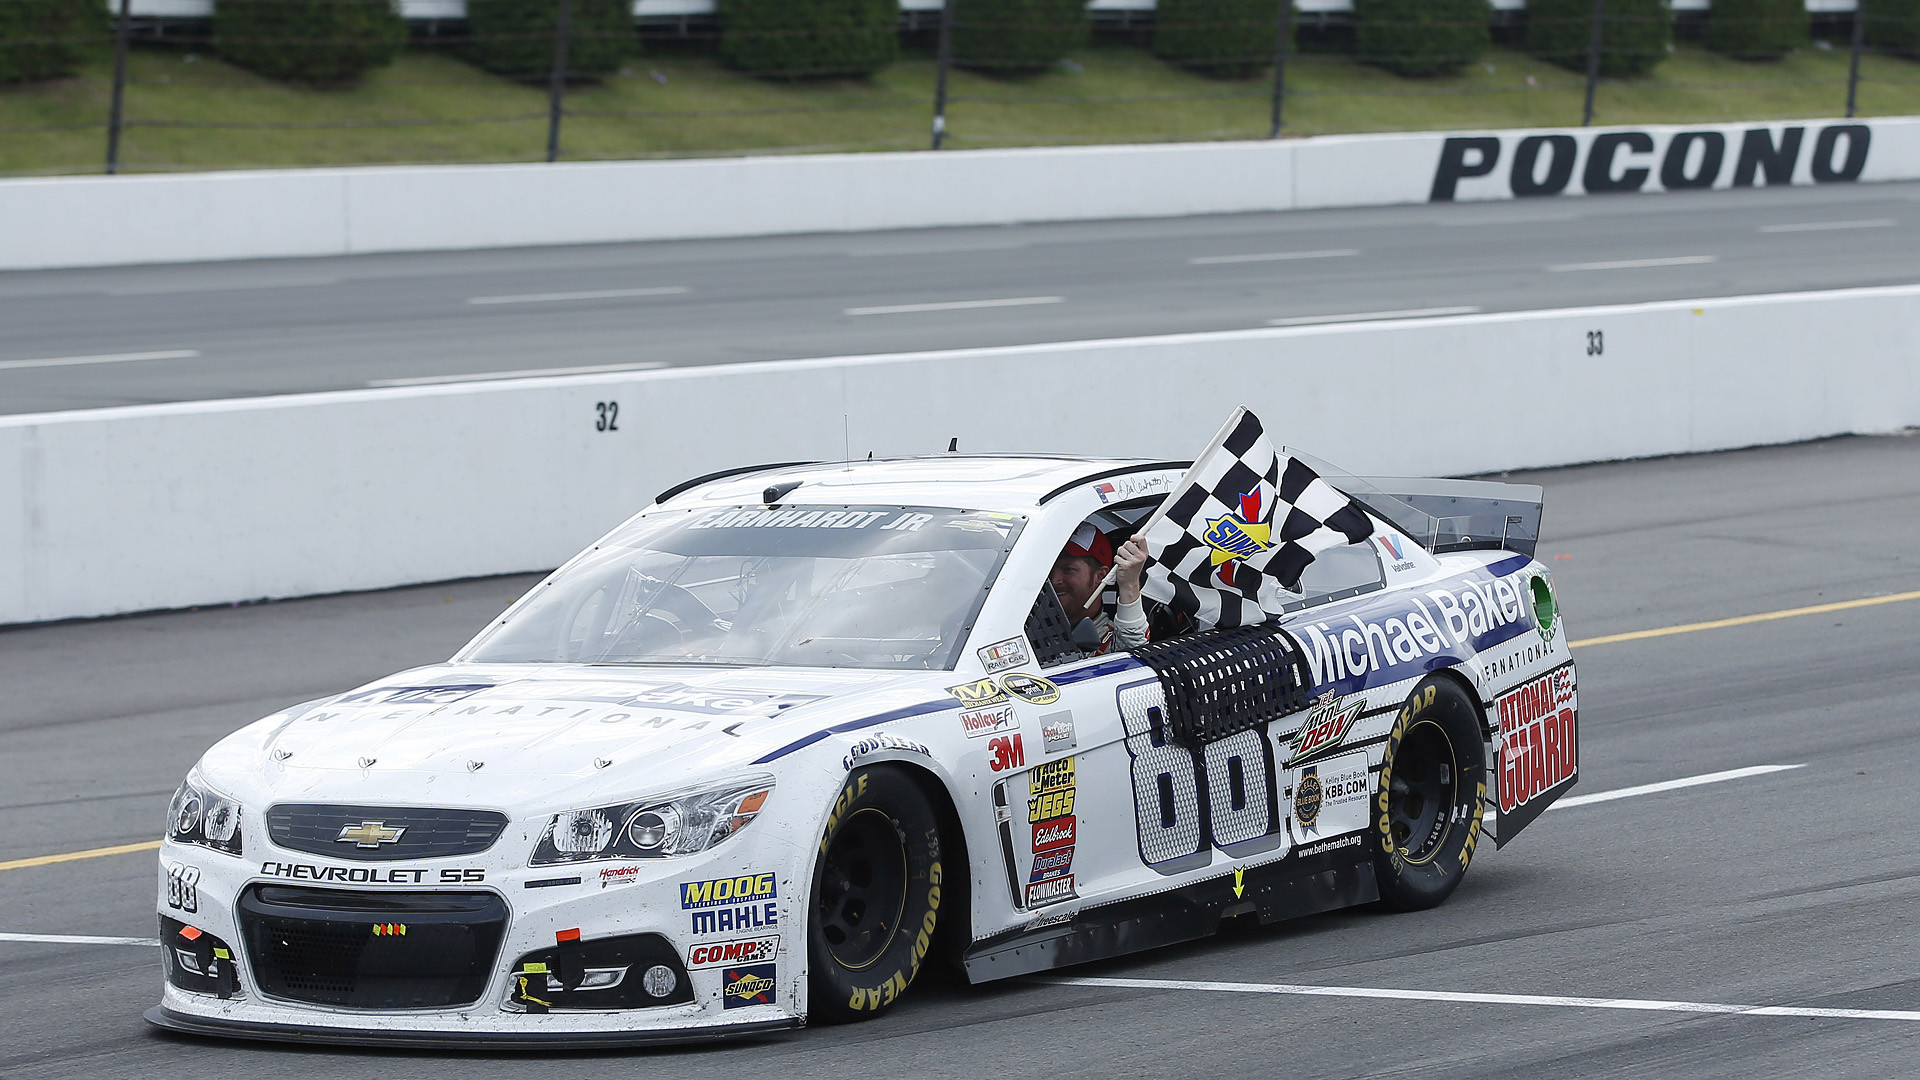 1920x1080 Dale Earnhardt Jr. wins again, sweeps Cup races at Pocono | NASCAR |  Sporting News